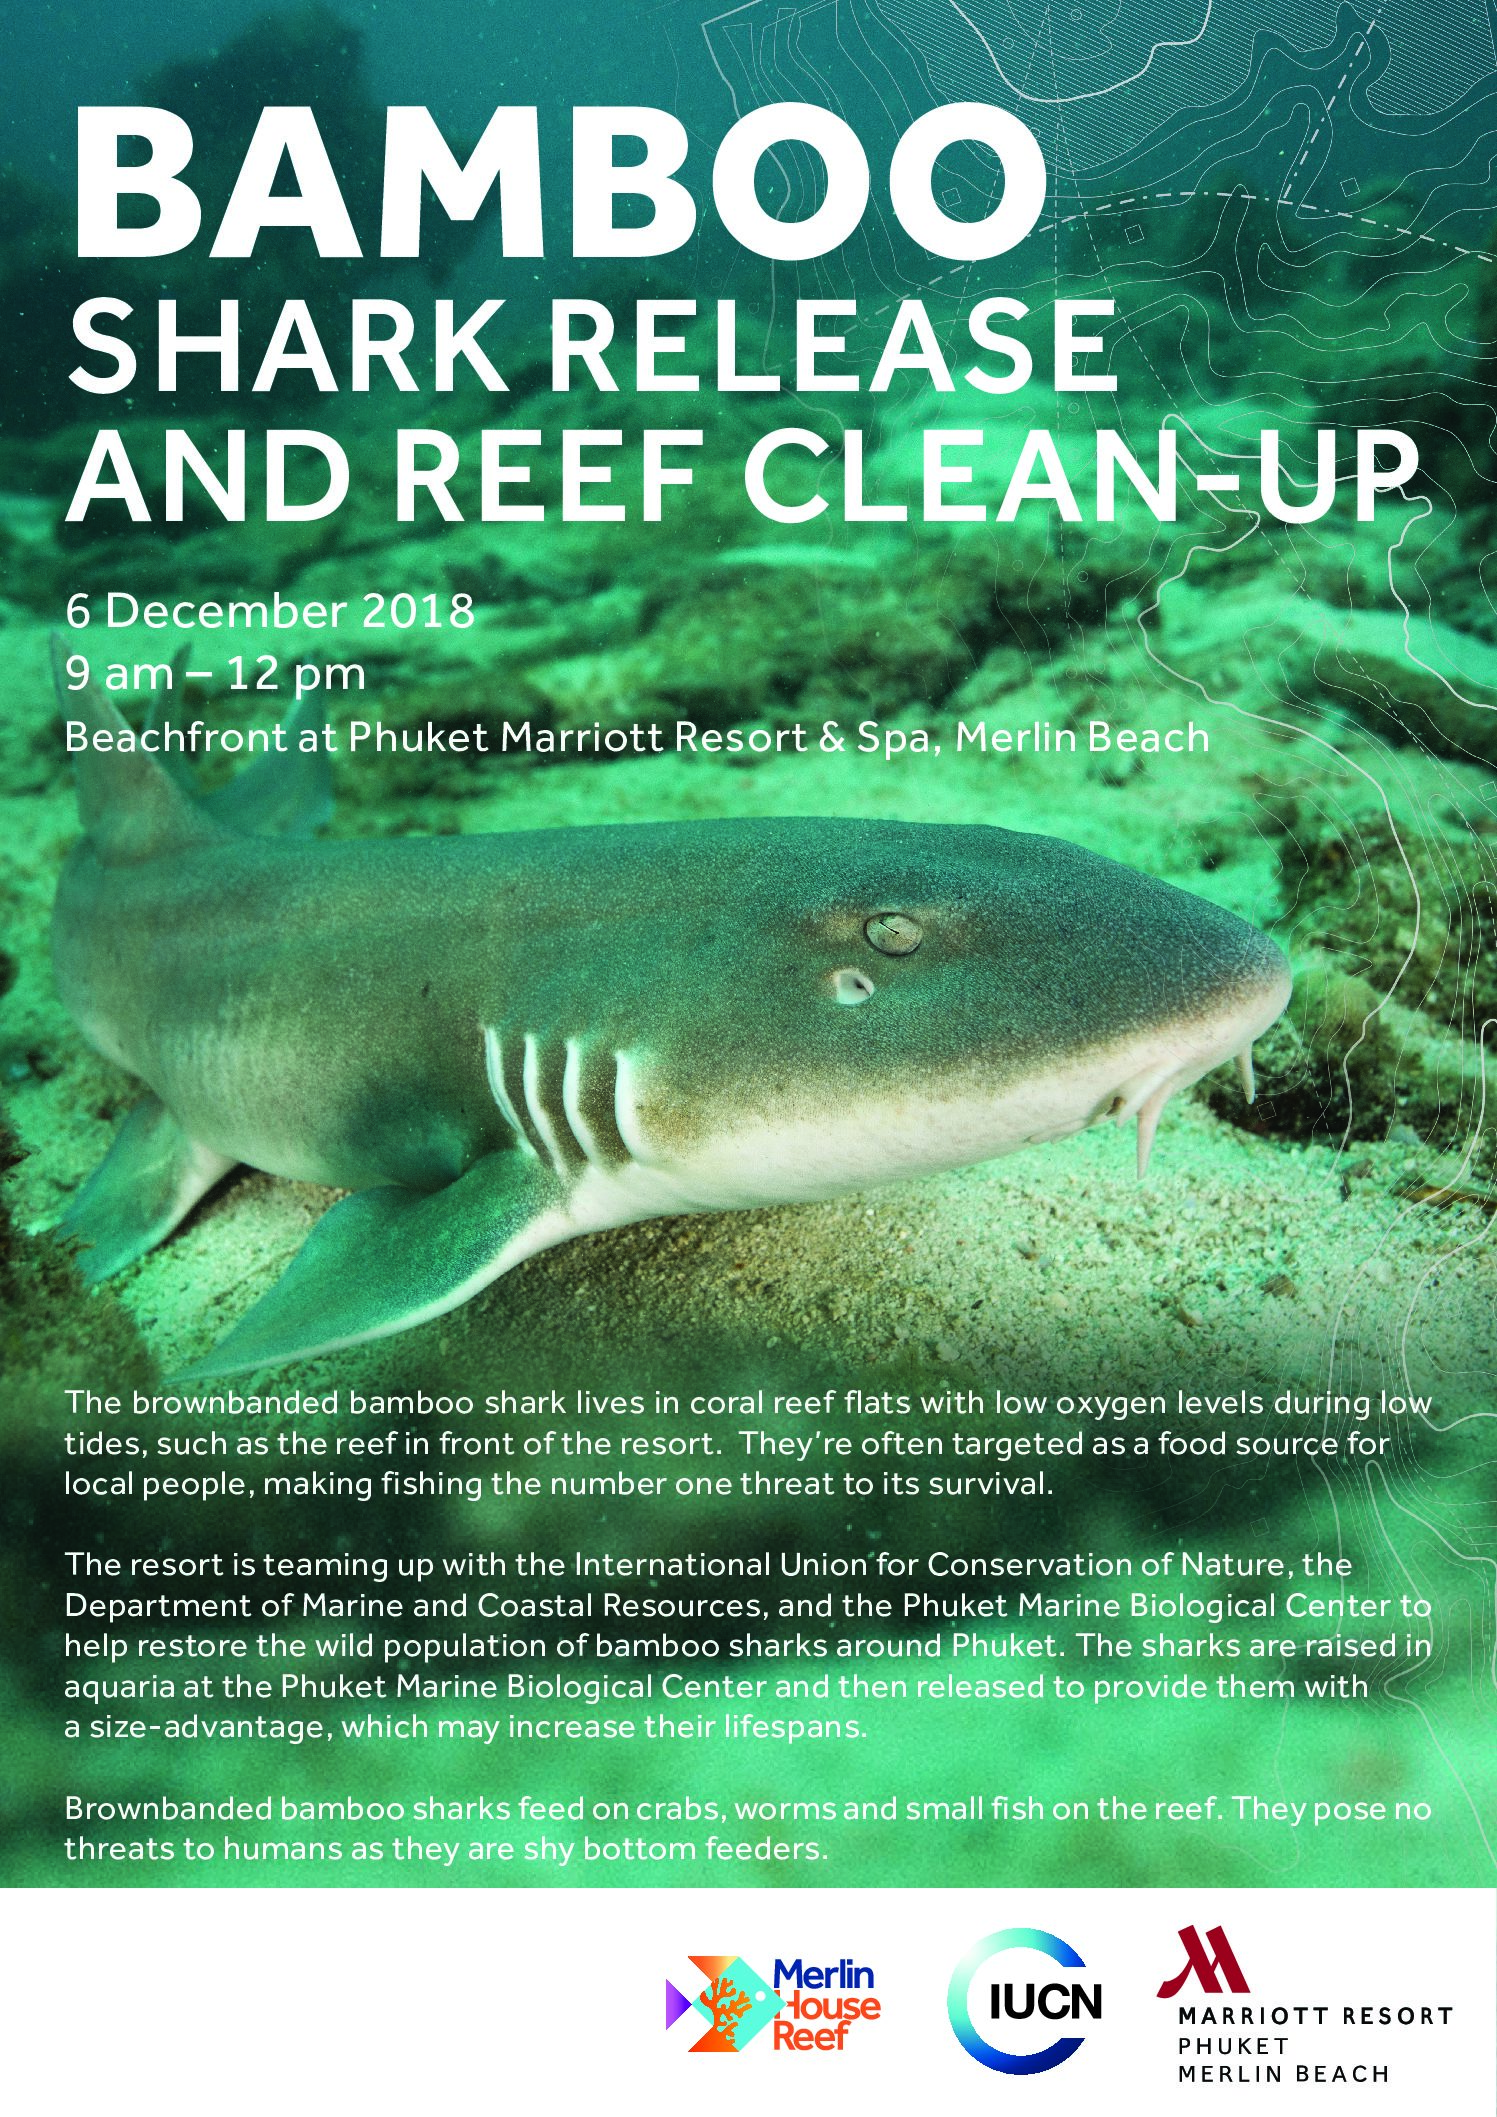 Bamboo Shark Release and Reef Clean-up